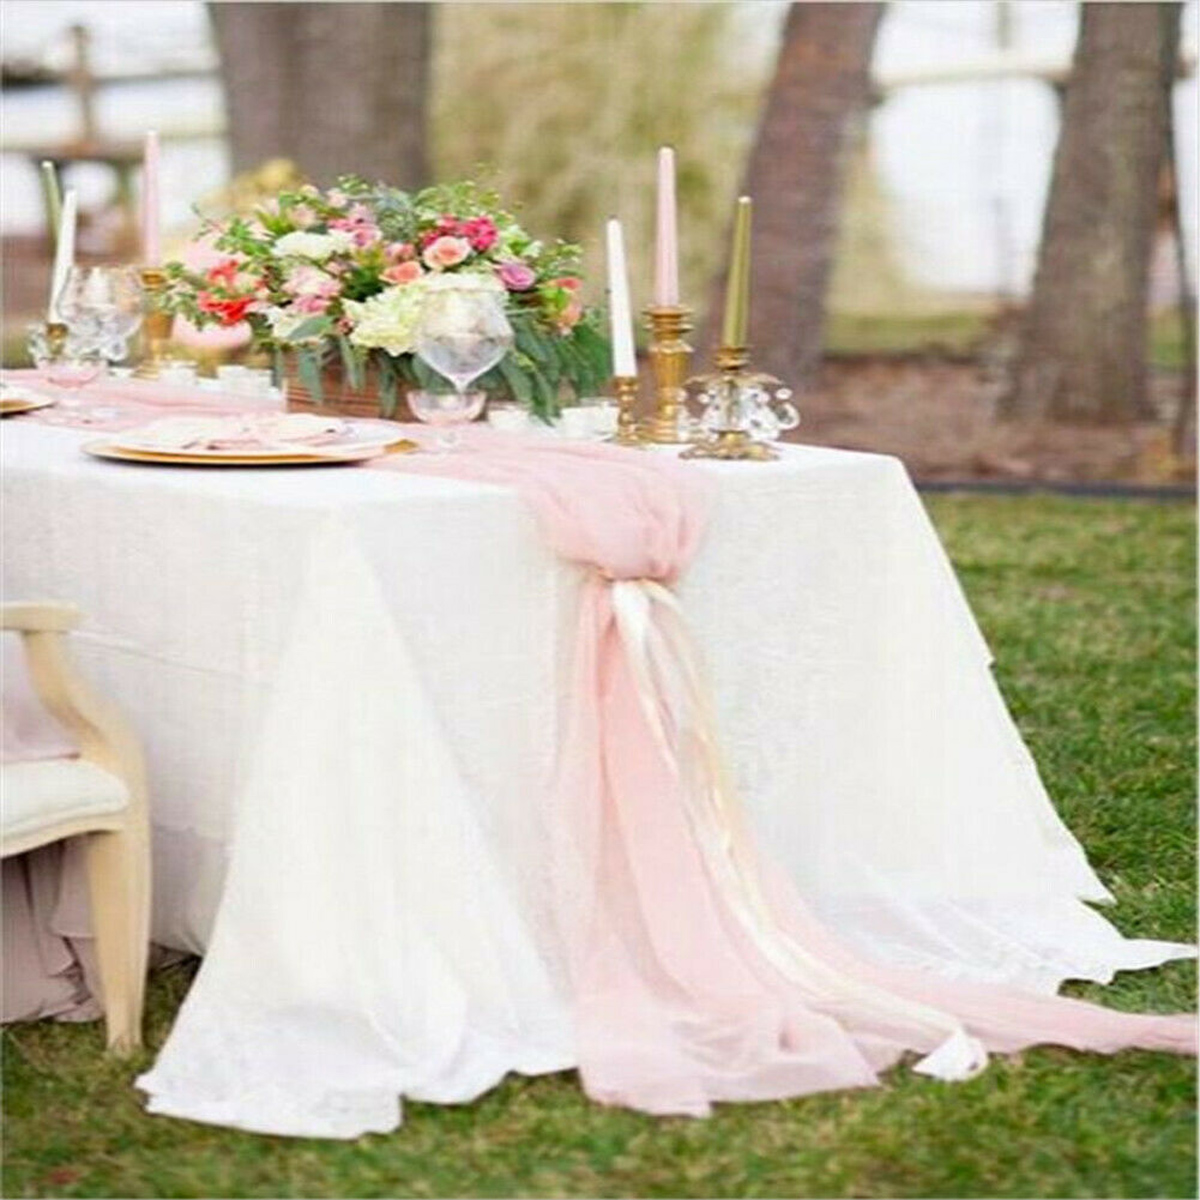 Solid Color Chiffon Table Runner White Wedding Table Cloth Runner Tablecloth Chair Sash Banquet Party Decor Table Flags Cover